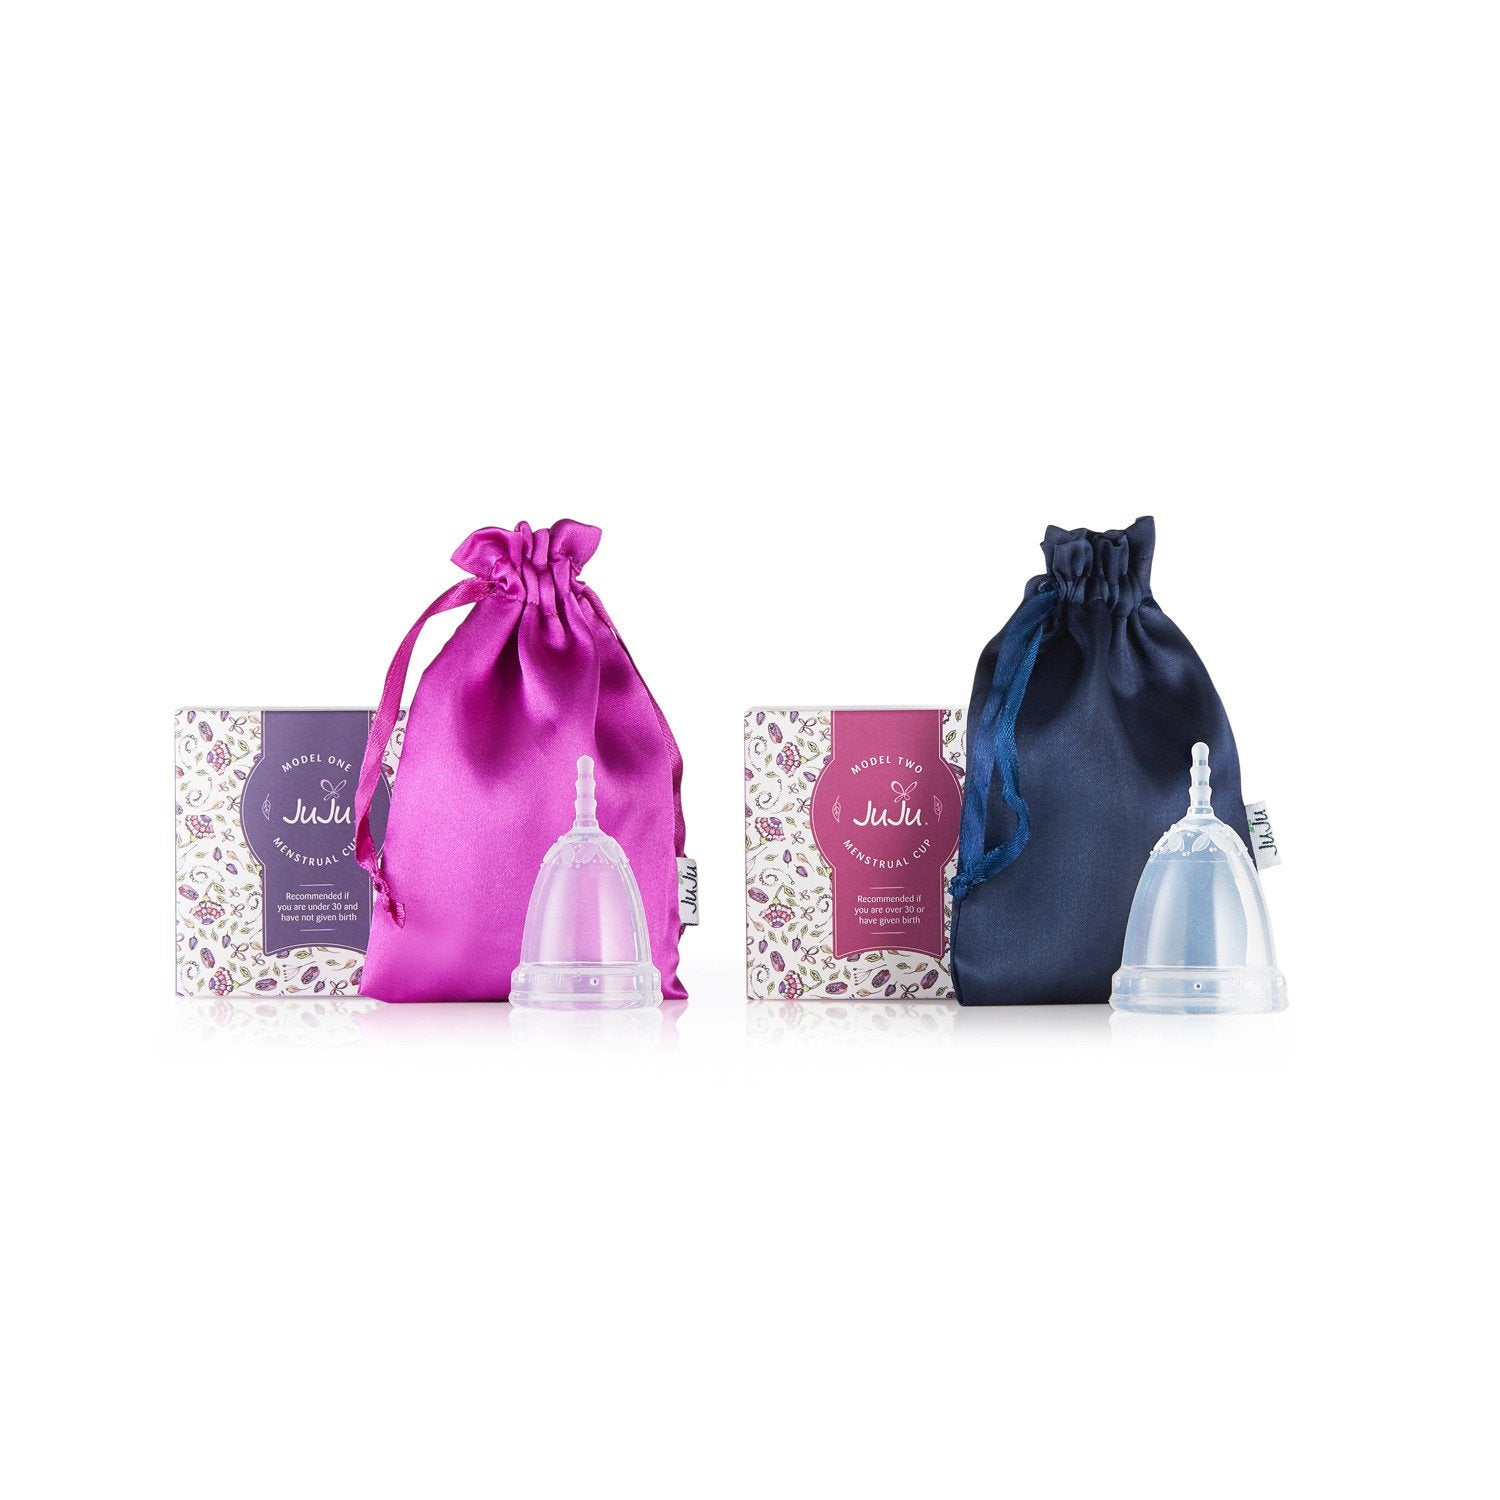 Juju Menstrual Cup Juju Menstrual Cups at Little Earth Nest Eco Shop